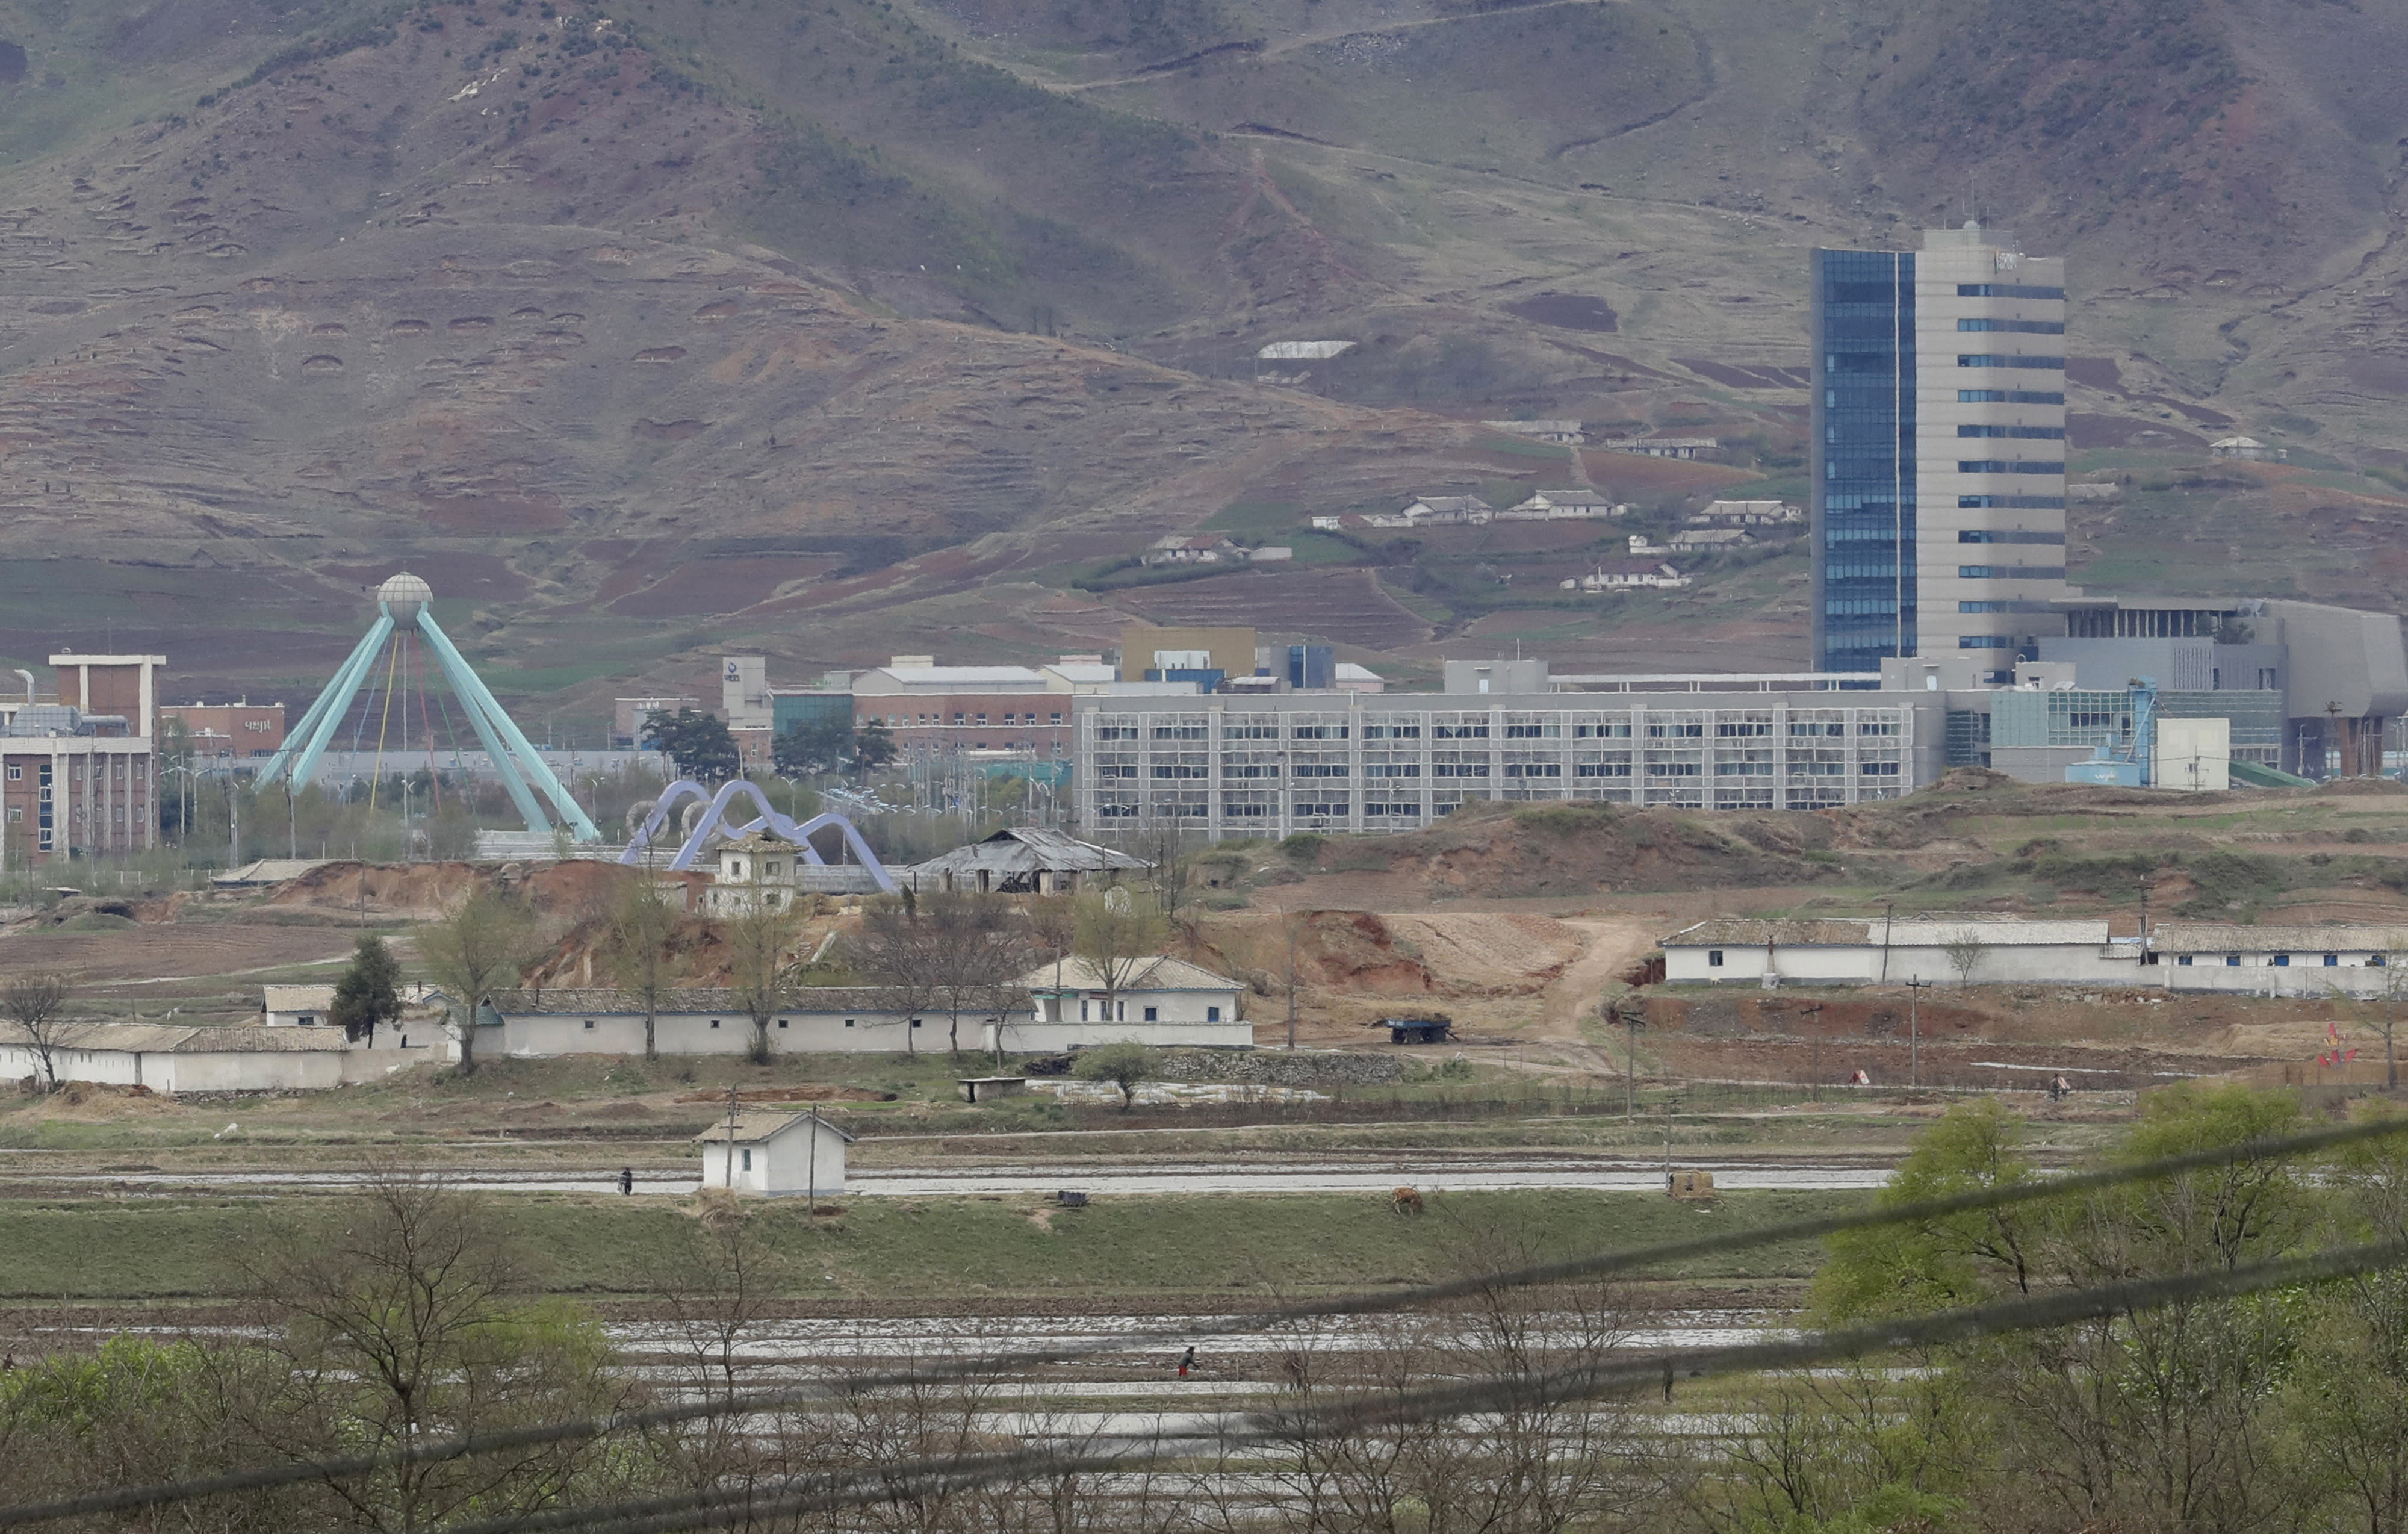 FILE - In this April 24, 2018, file photo, the Kaesong industrial complex in North Korea is seen from the Taesungdong freedom village inside the demilitarized zone during a press tour in Paju, South Korea. South Korea's Unification Ministry on Wednesday, Oct. 10, 2018, said the water is being supplied to a liaison office between the countries that opened in Kaesong in September 2018 and has been provided to the town's residents as well. (AP Photo/Lee Jin-man, File)